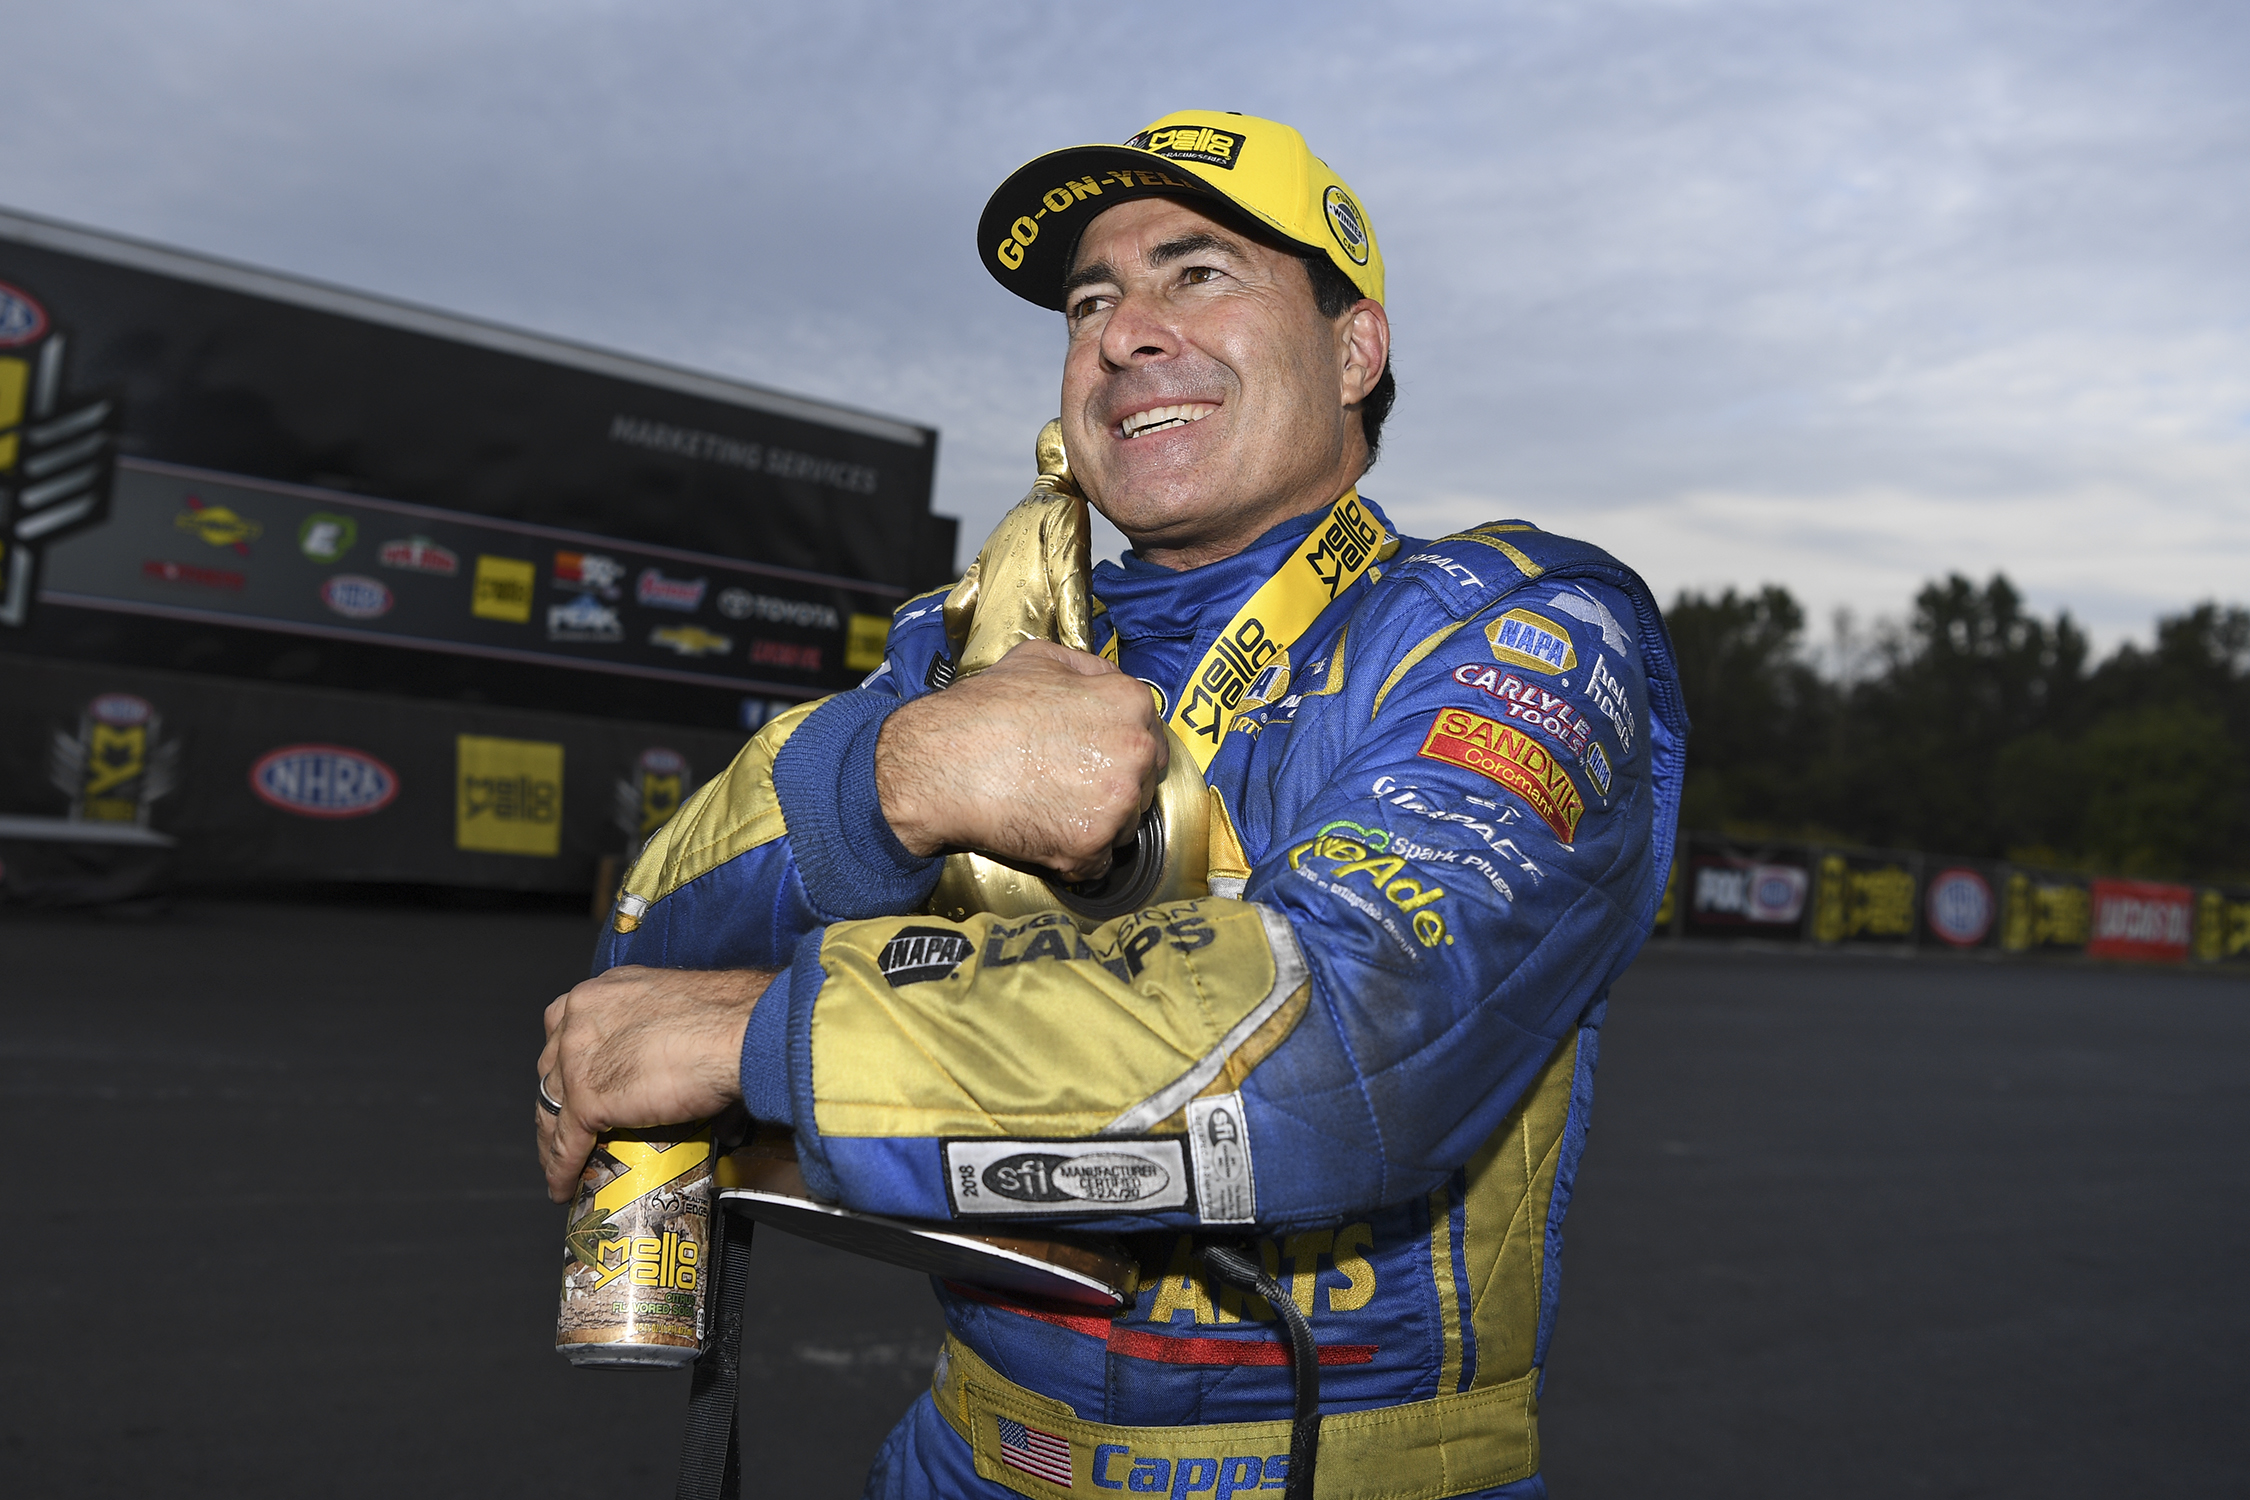 NAPA Auto Parts Funny Car pilot Ron Capps with the Wally after winning the NHRA Carolina Nationals